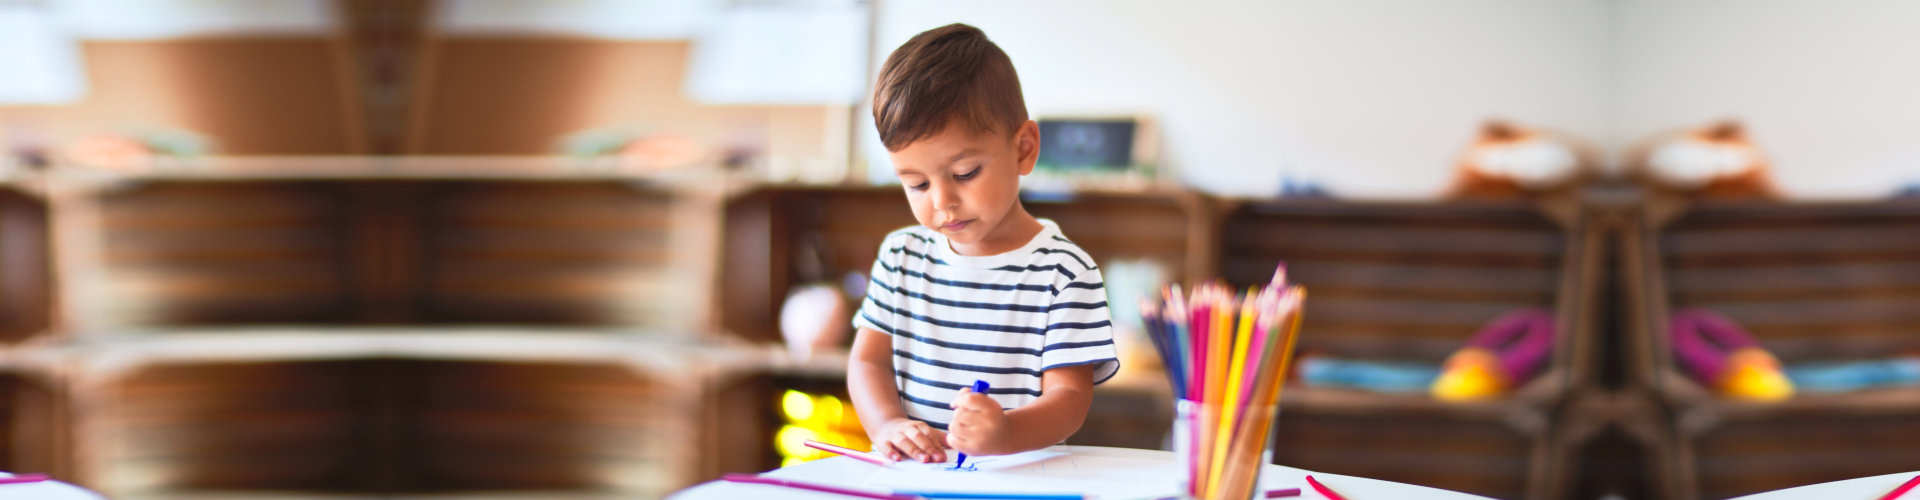 child drawing on the desk